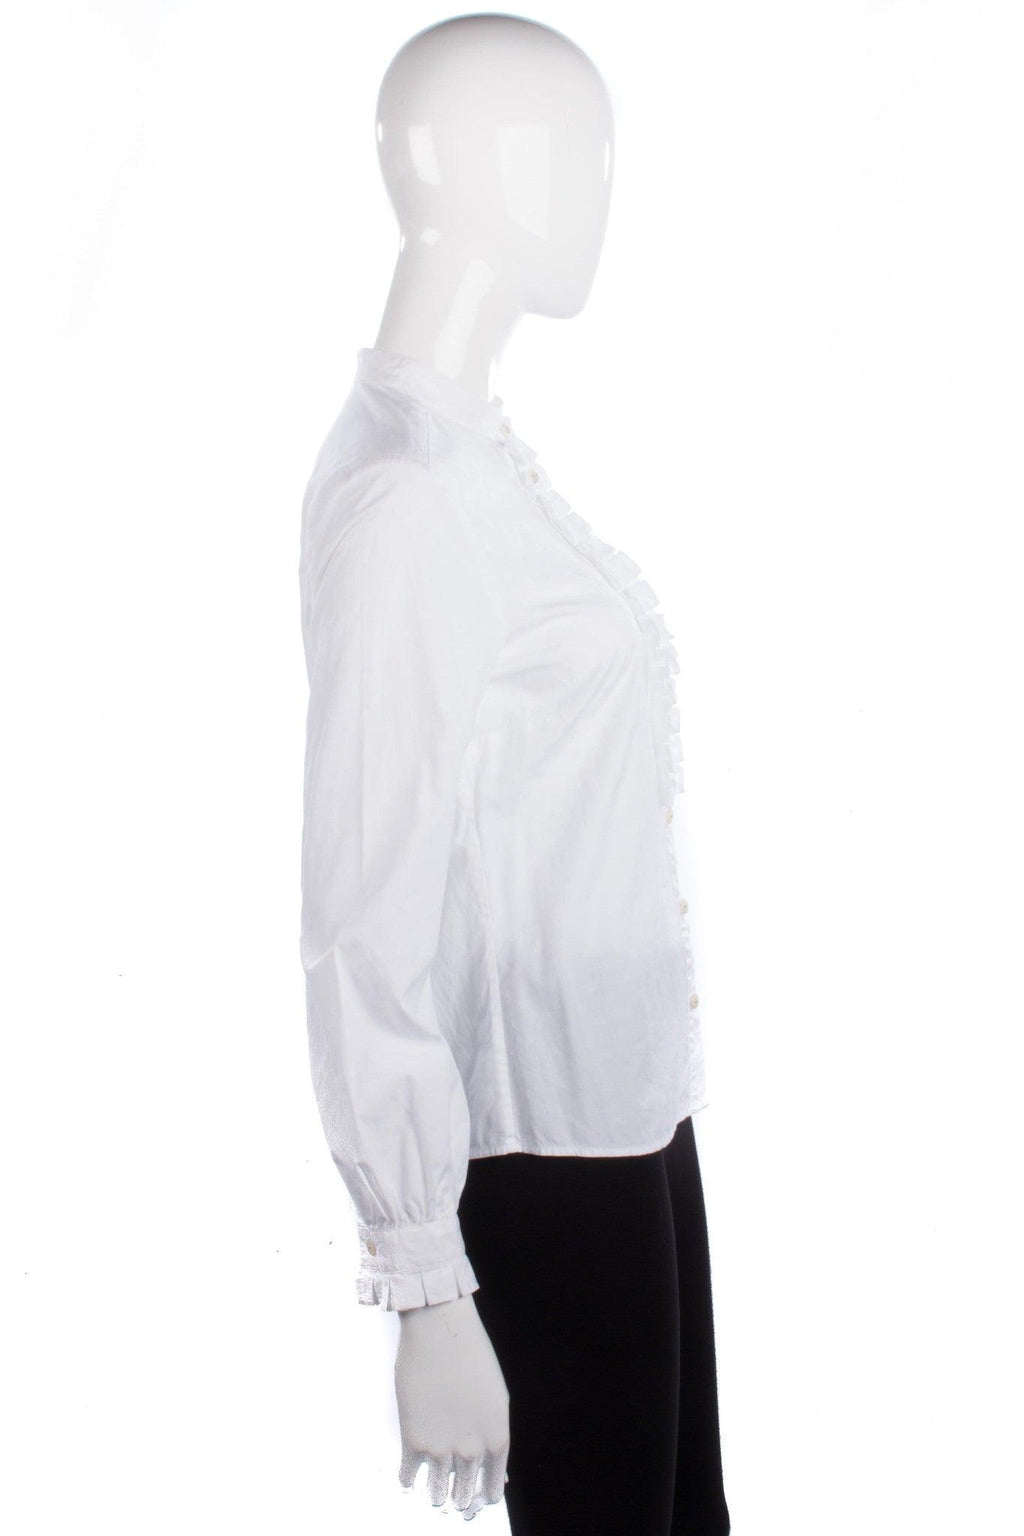 Jaeger Shirt Cotton White with Ruffle Detail Size 10